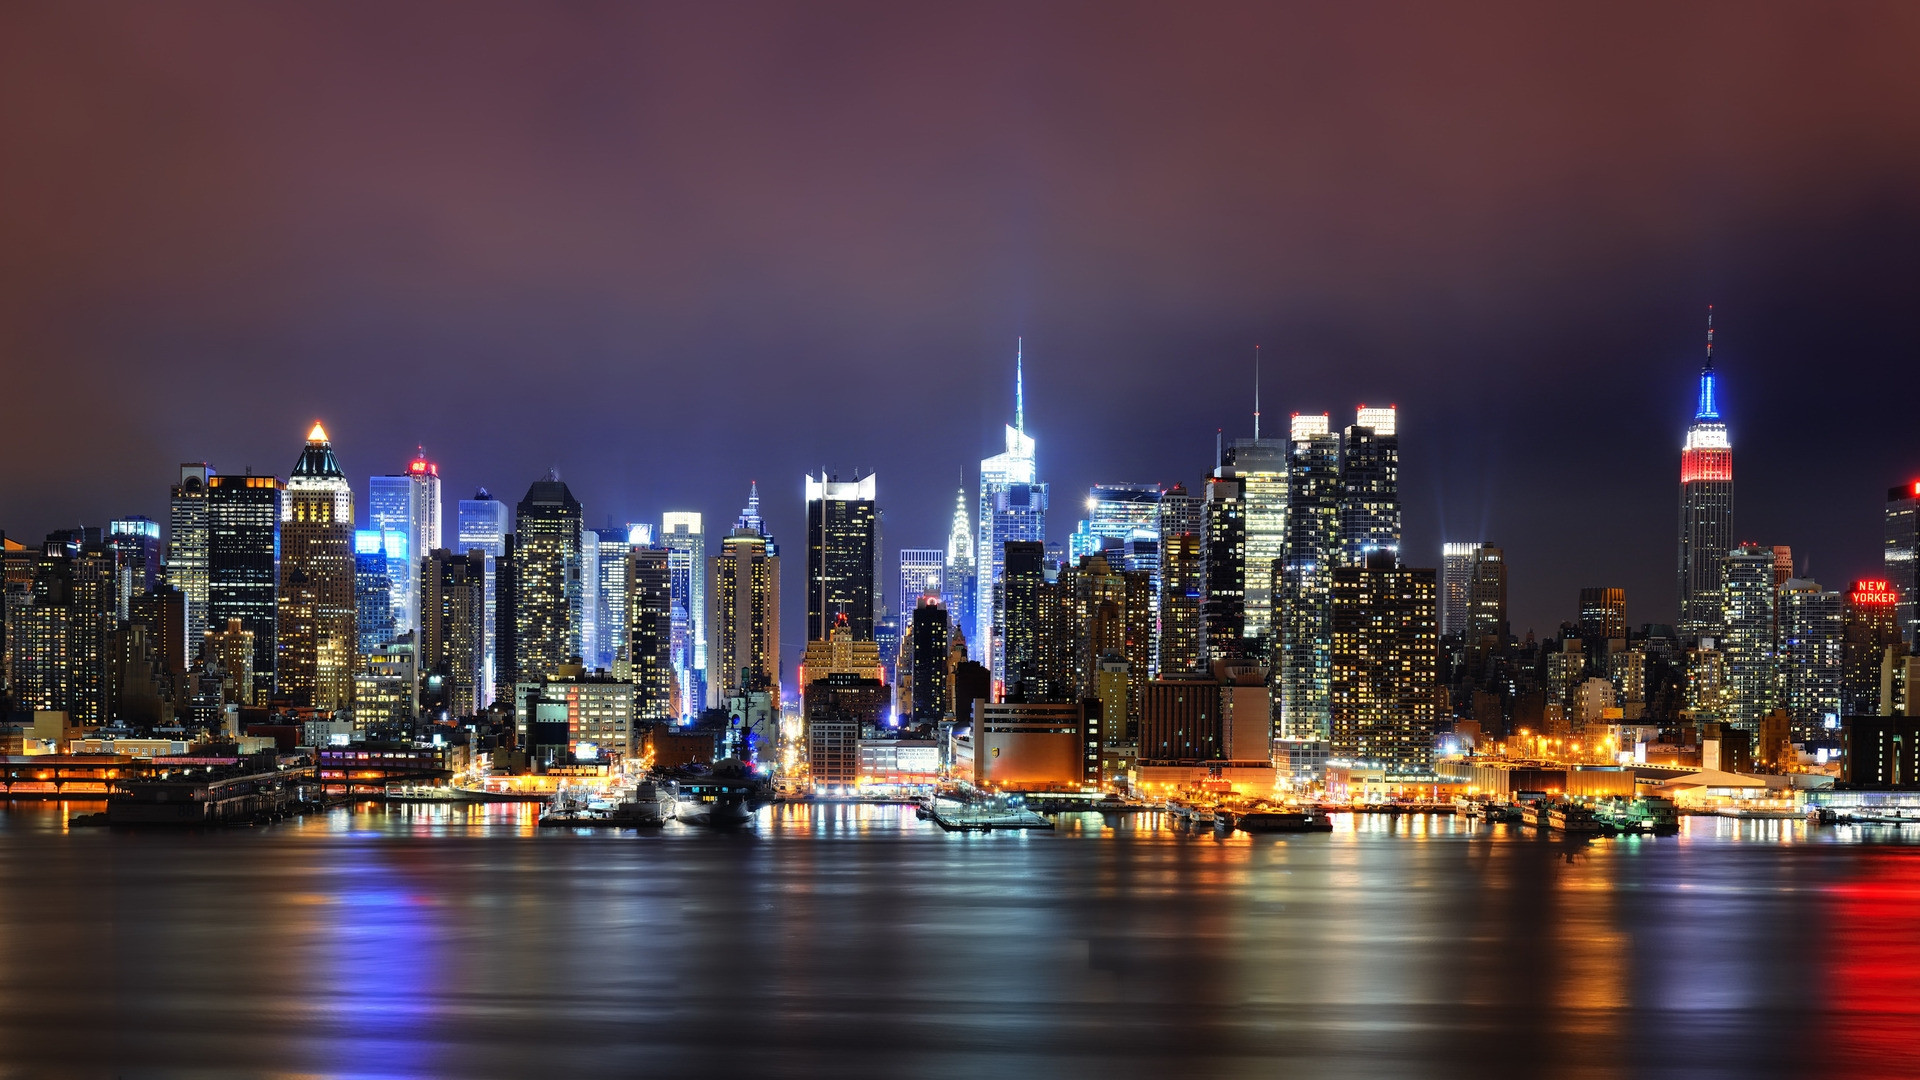 City Landscape New York Wallpaper Windows 1920x1080